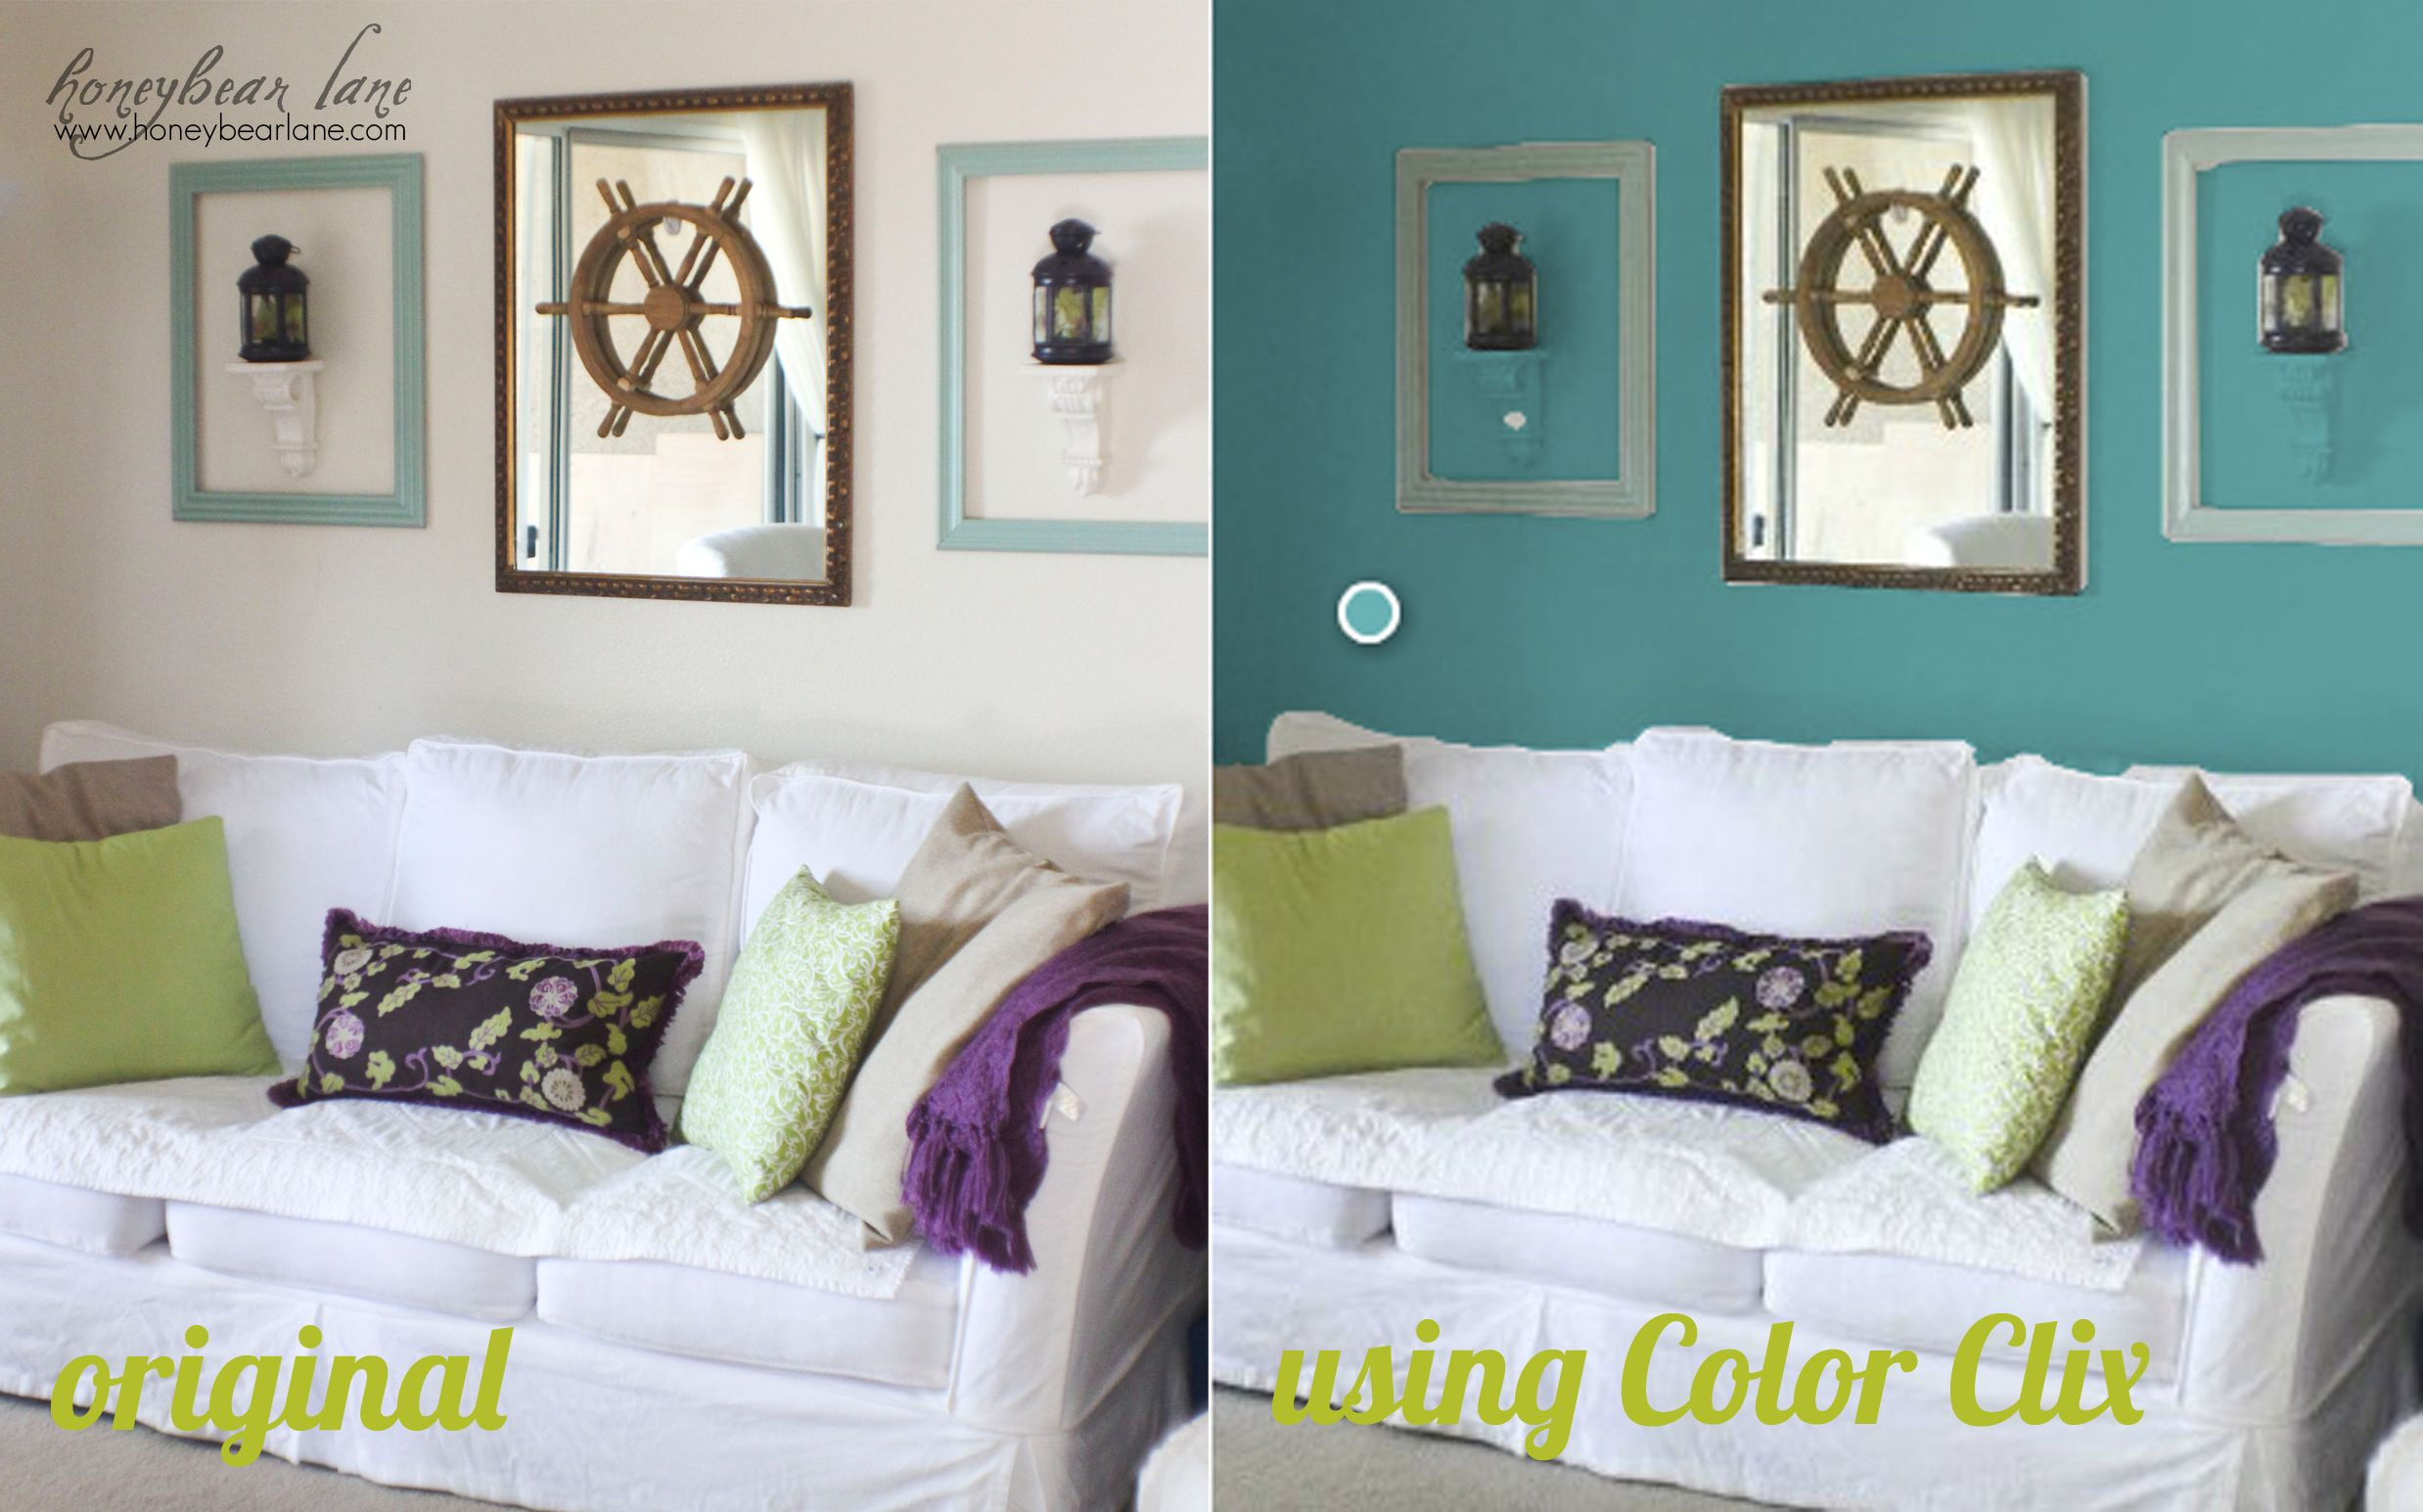 Painting Your Living Room Good Colors To Paint Your Room Good Color For Bedroom Fabulous